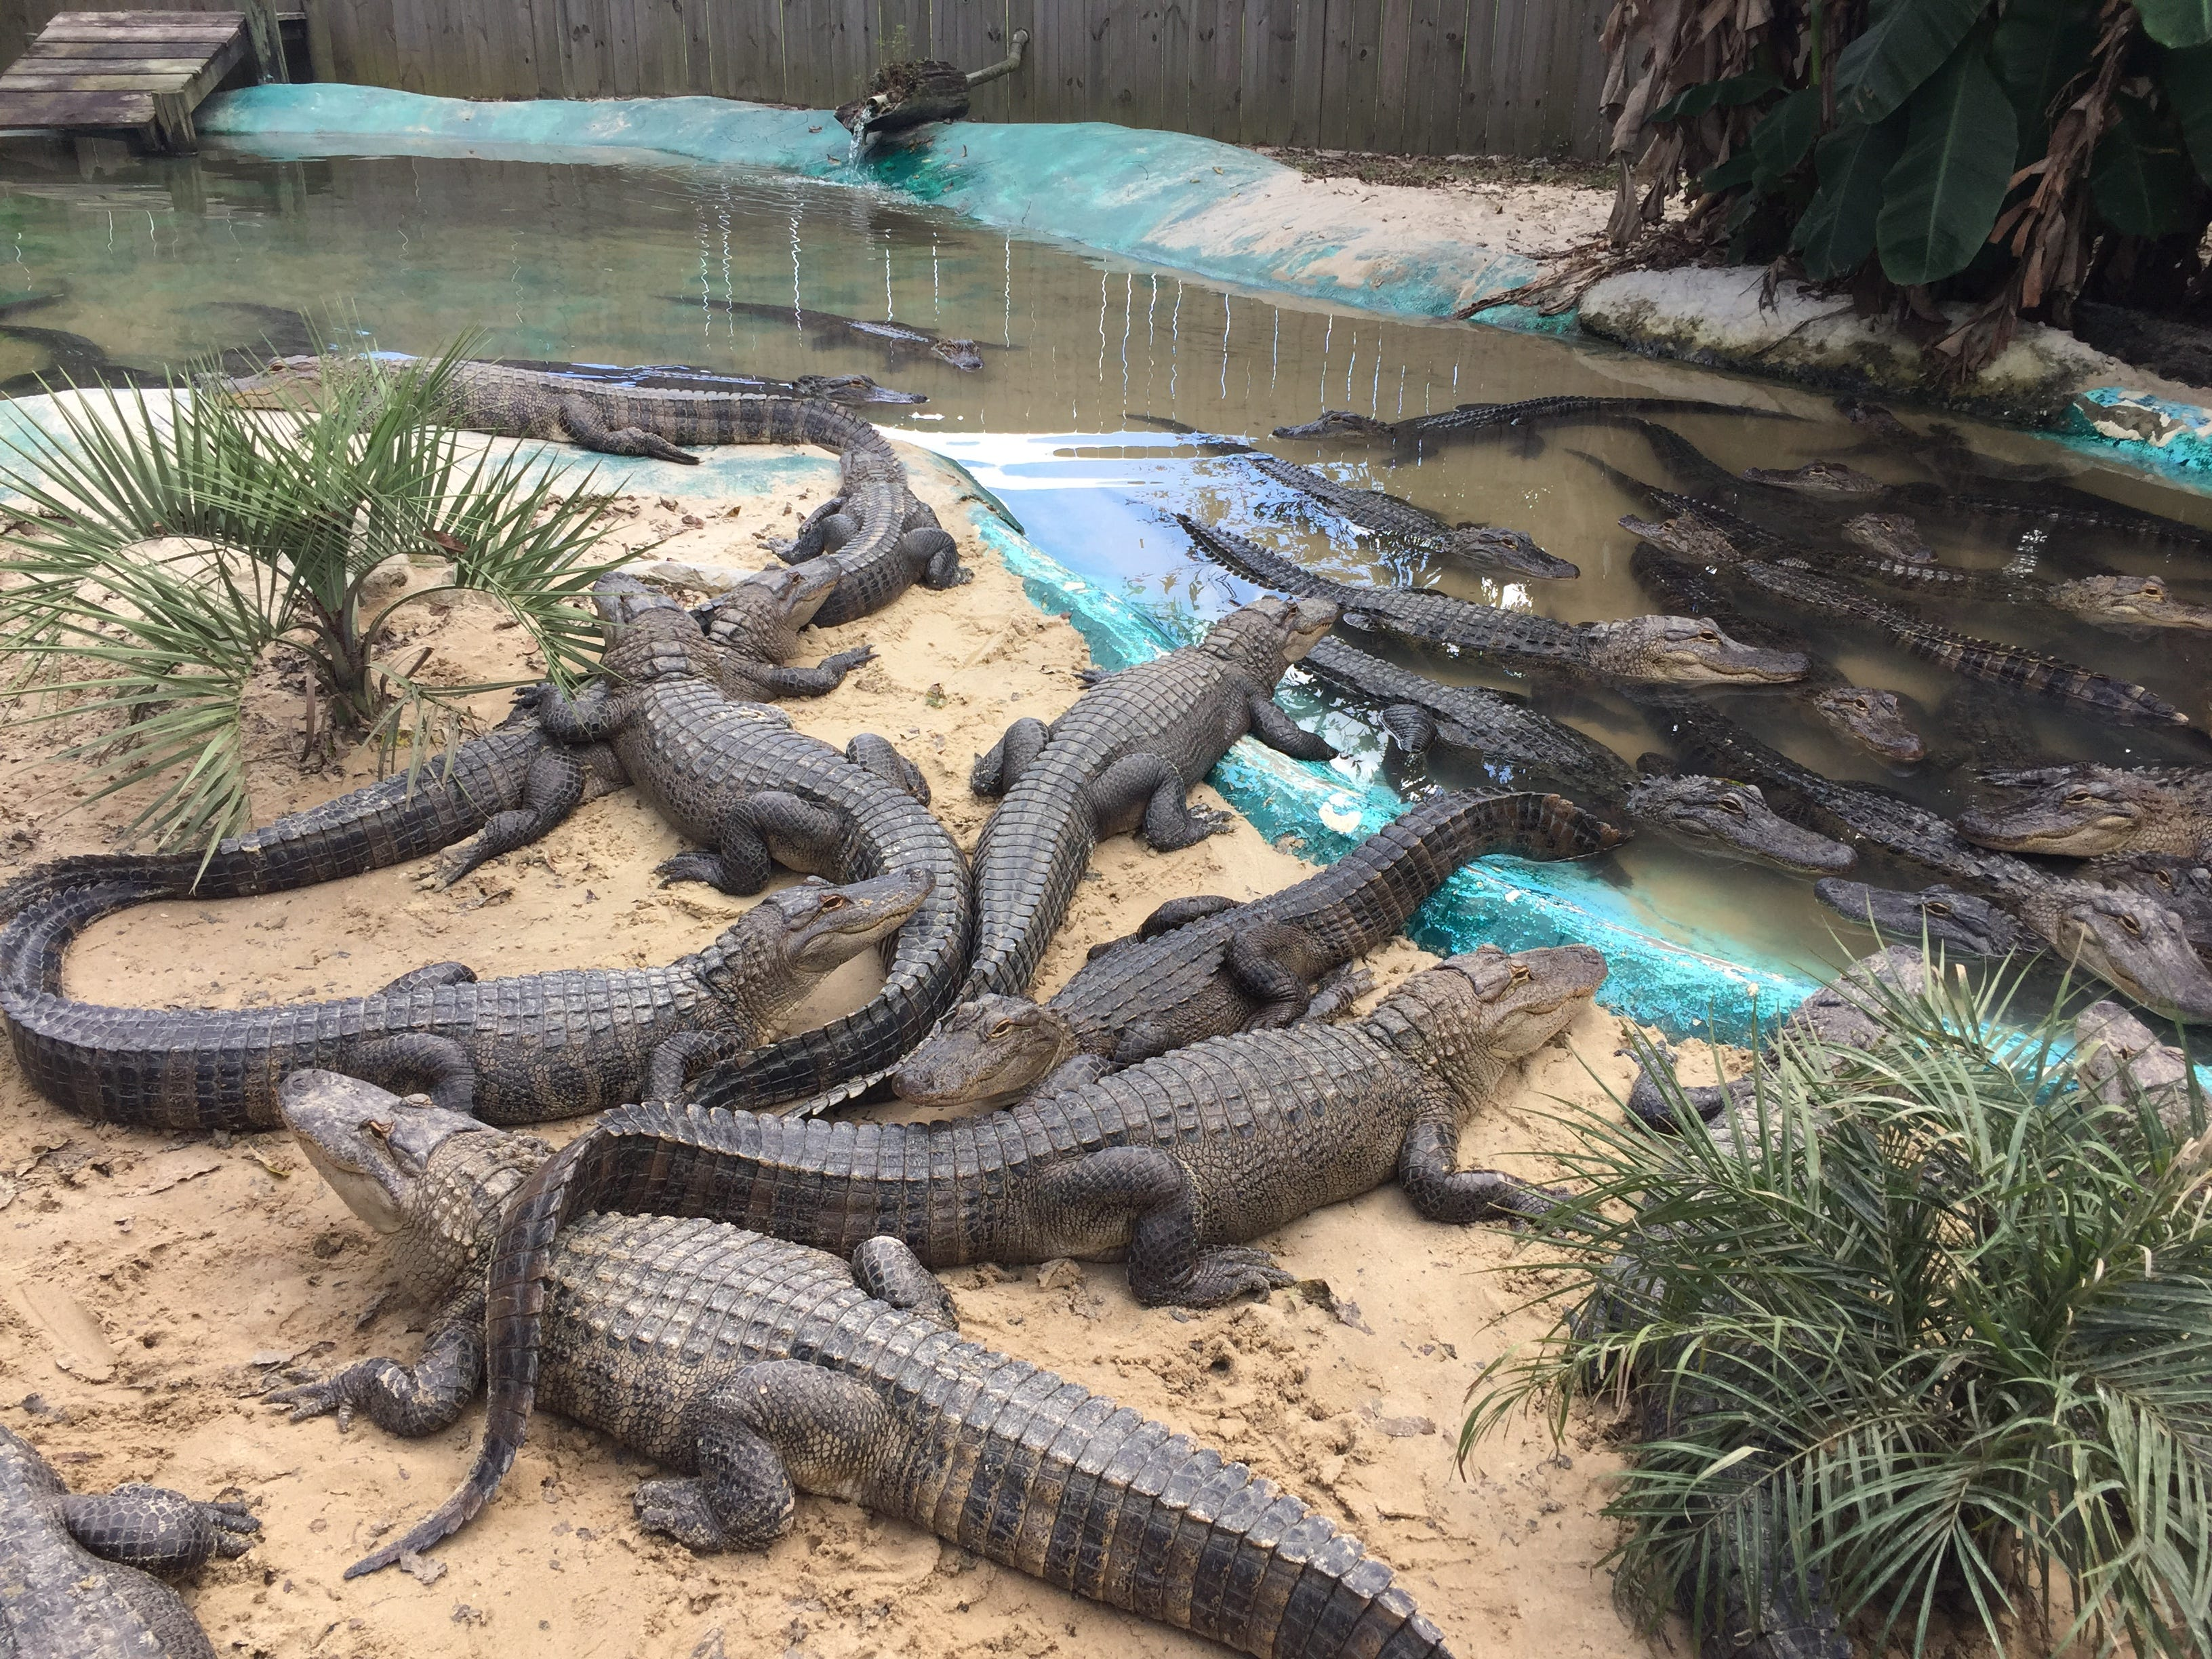 Alligators fill an exhibit at Alligator Alley in Summerdale, Ala., where more than 450 alligators reside.